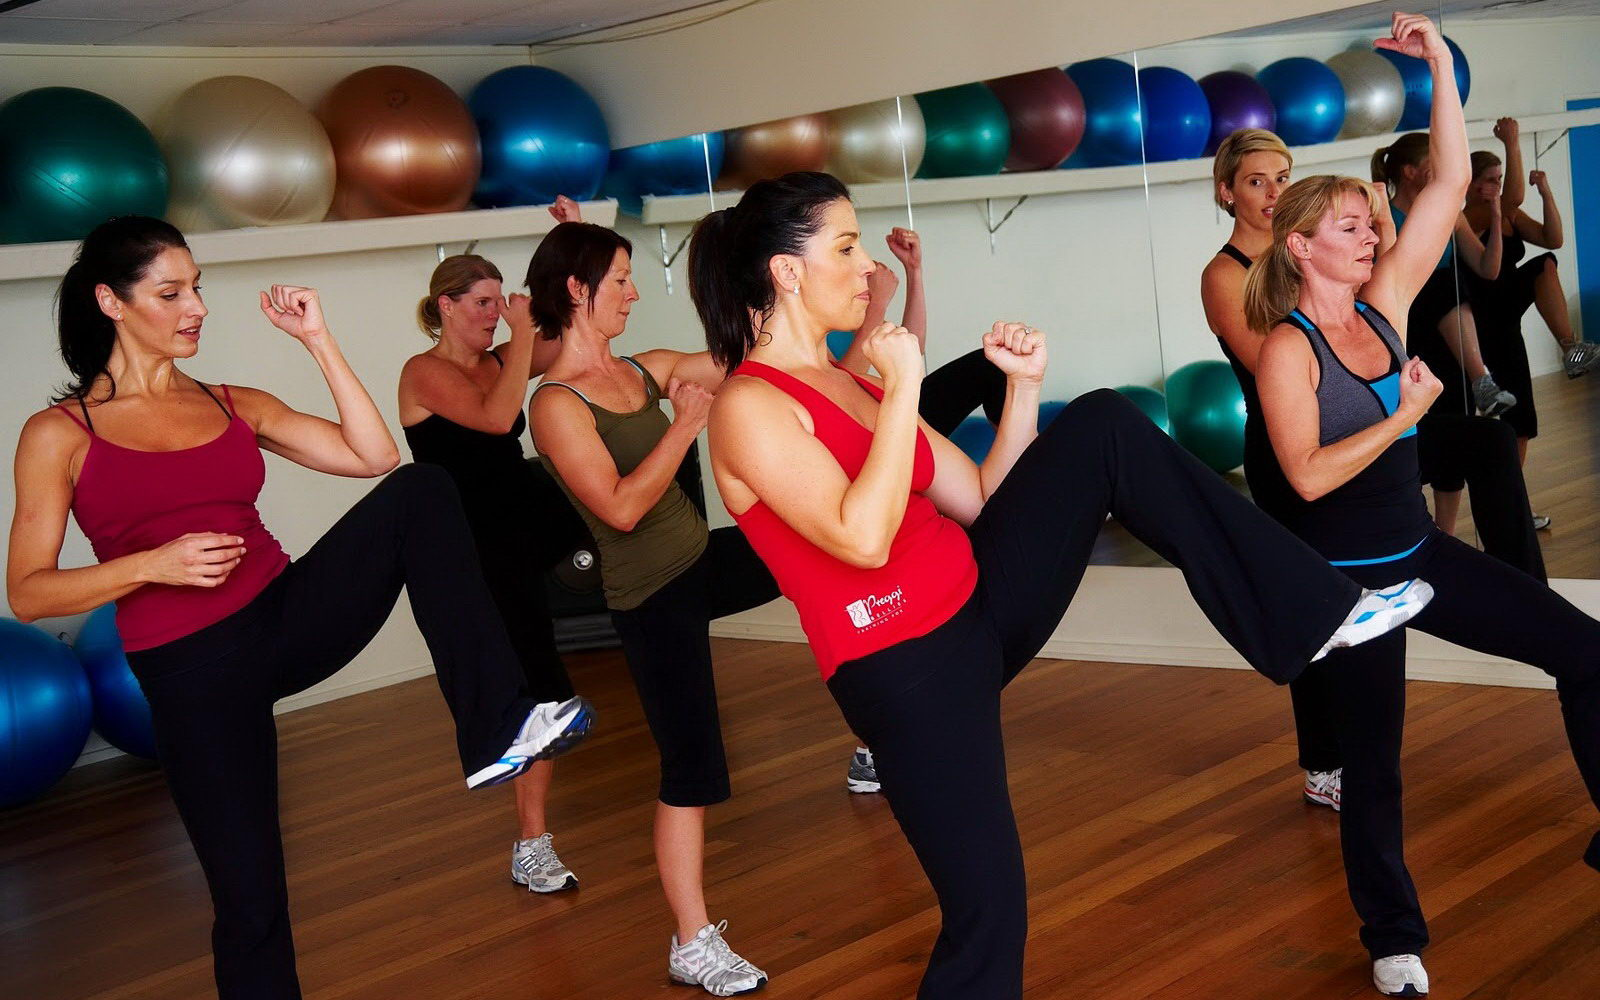 Women Fitness Excercises And Poses Wallpapers Widescreen Wallpapers 1600x1000